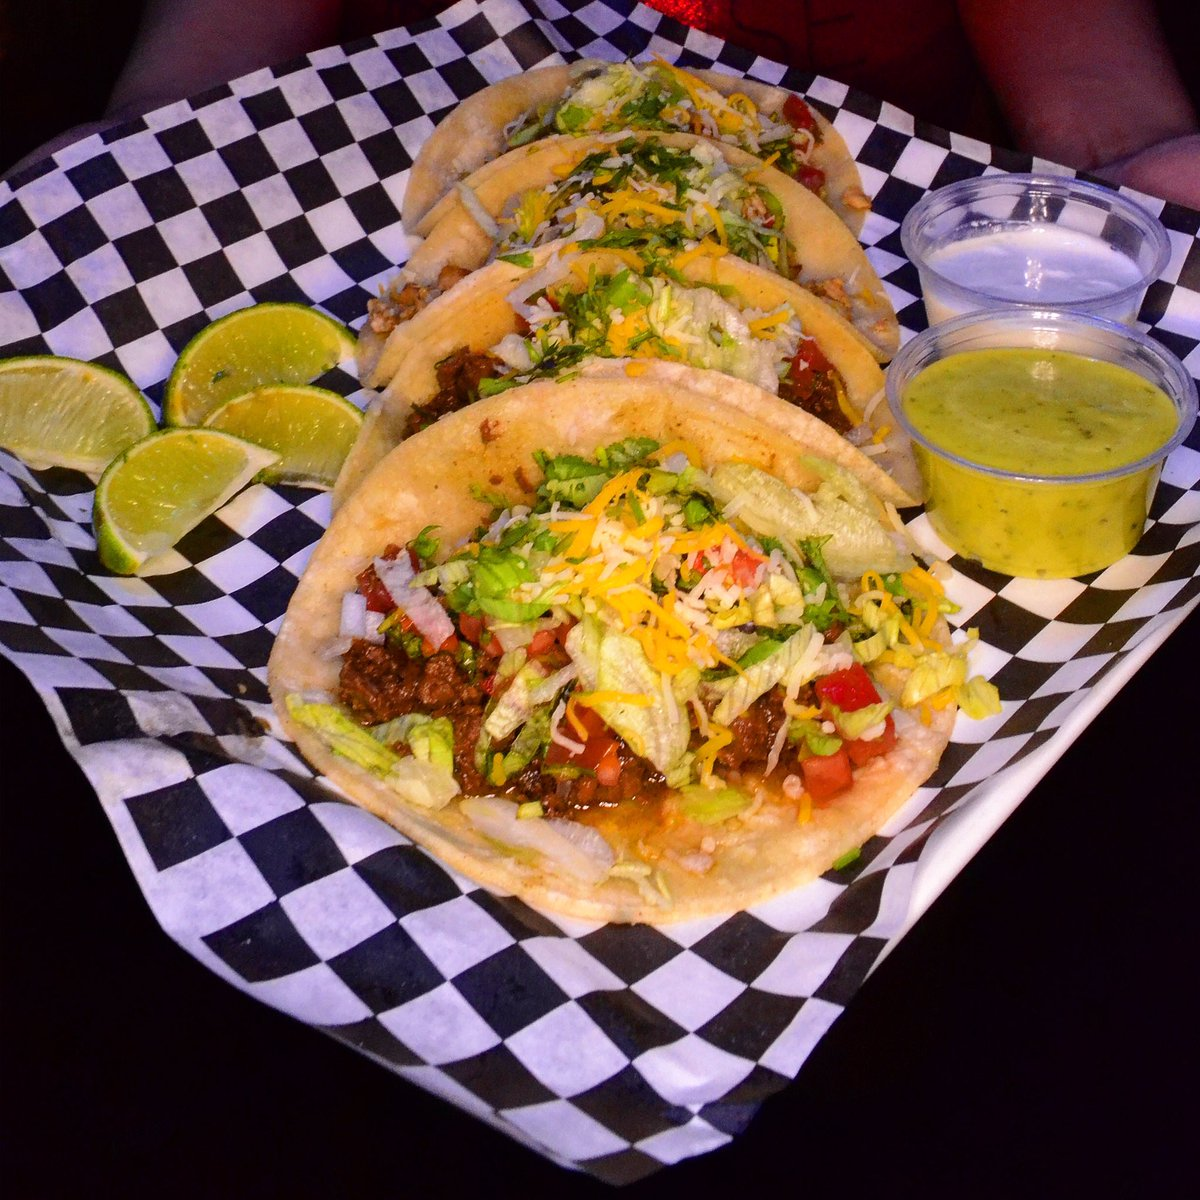 Taco Tuesday is best kind of Tuesday  #therapy #therapyhouston #tacotuesday #houston #htx<br>http://pic.twitter.com/BGQdDiUsek